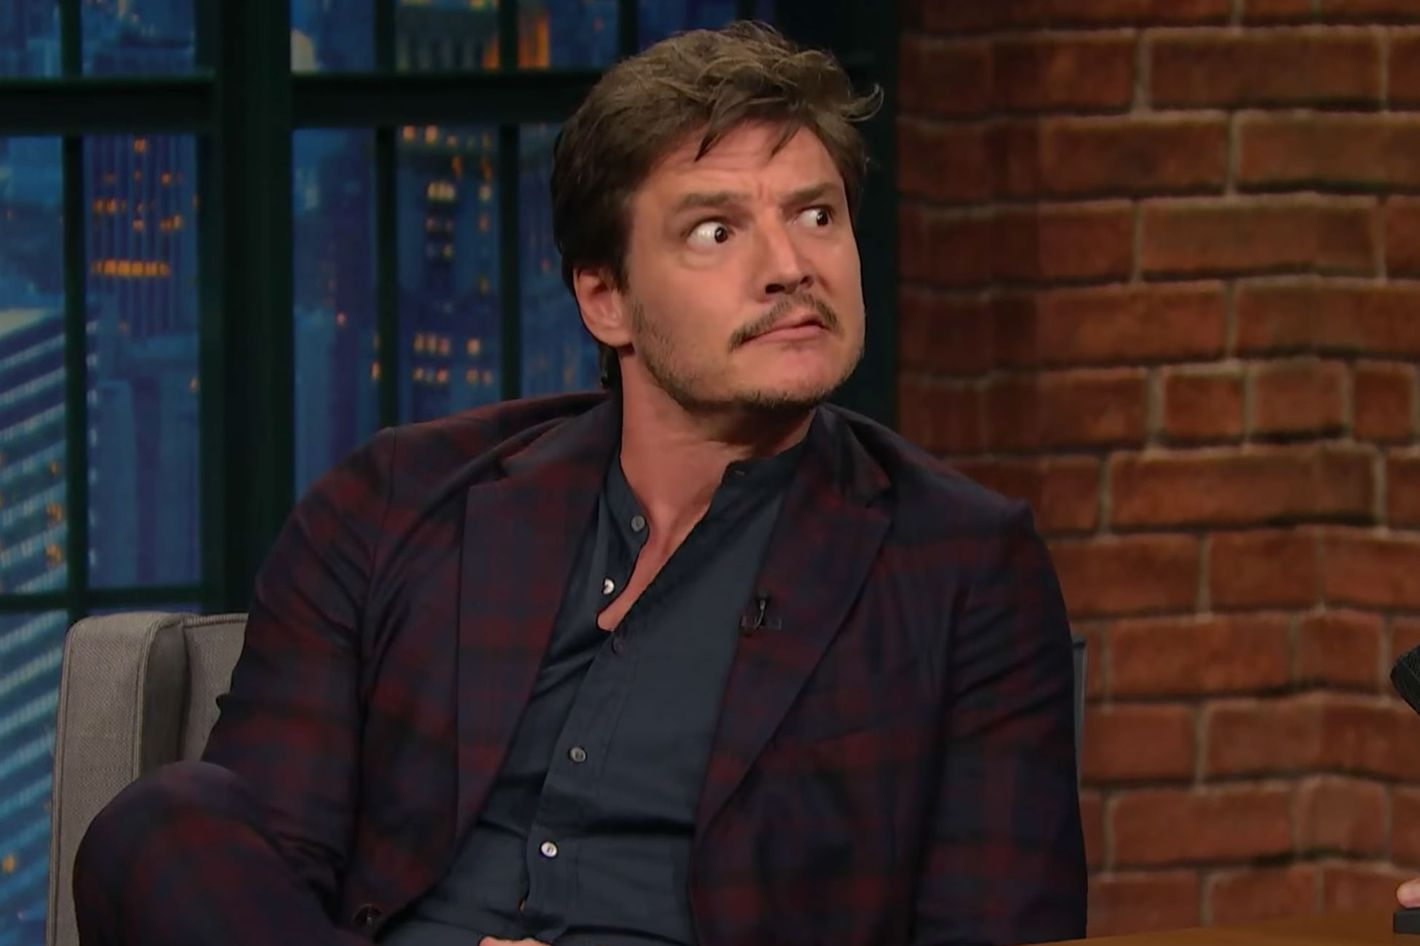 pedro pascal explains how sarah paulson got him on game of thrones